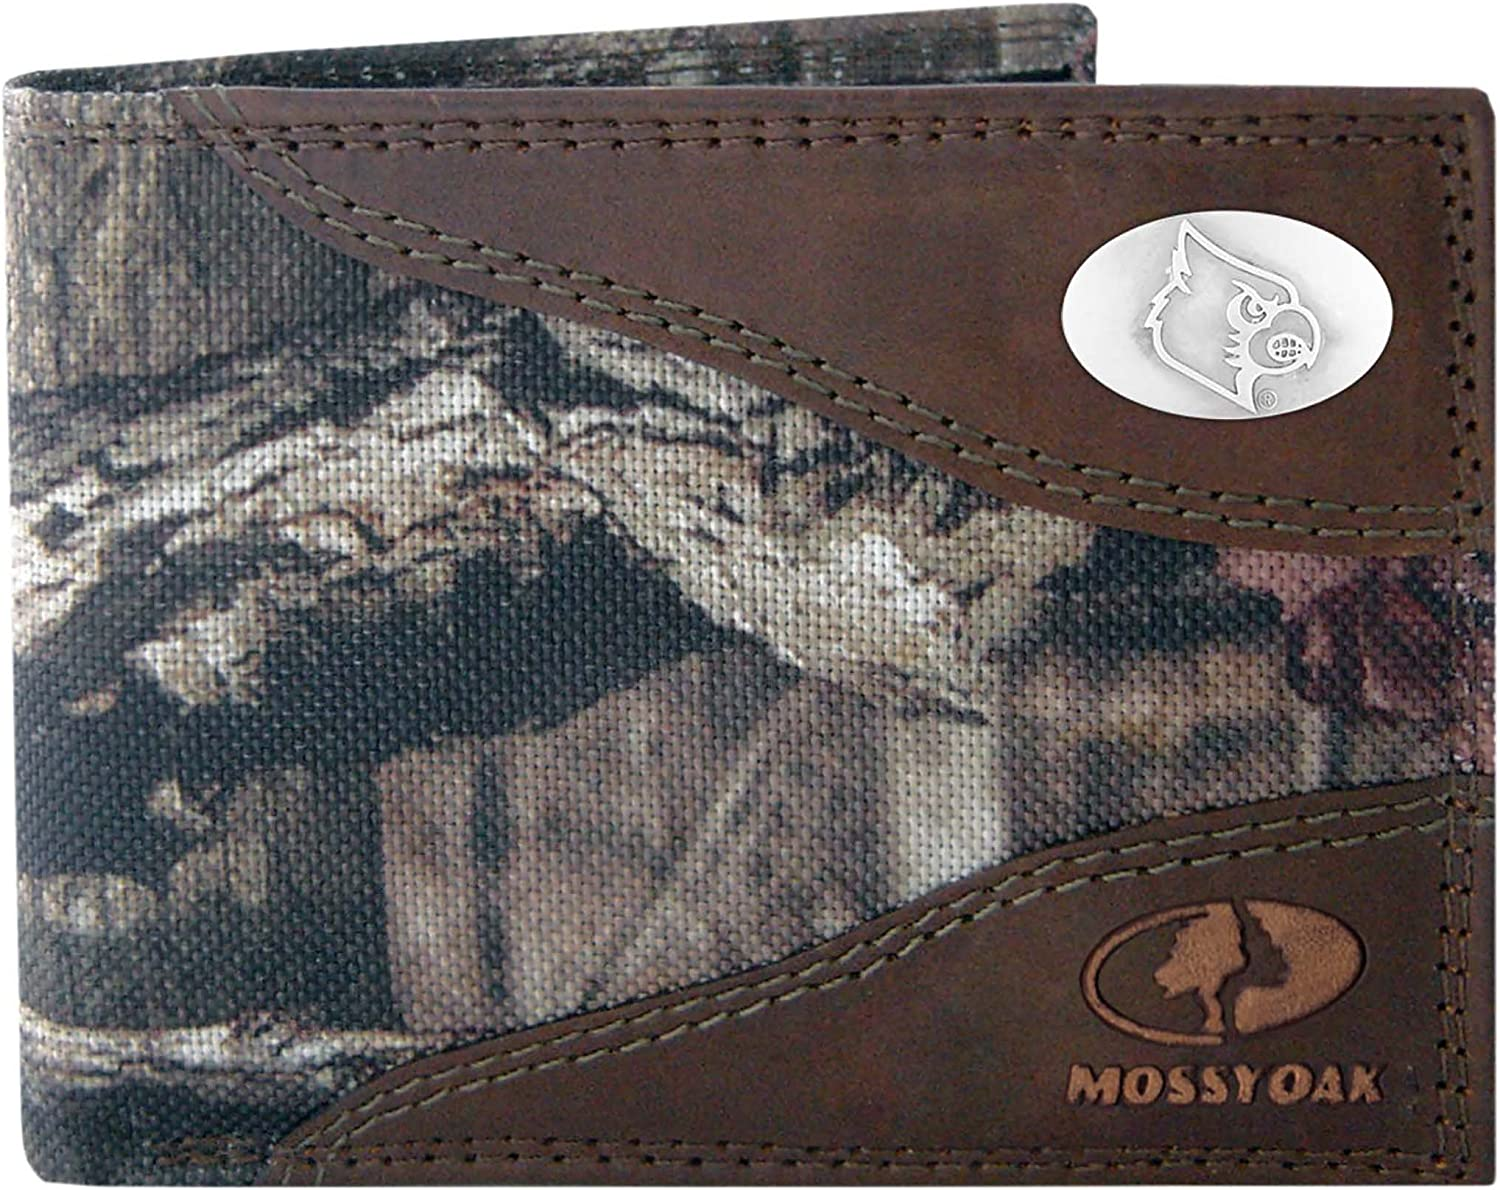 ZEP-PRO NCAA mens Zep-Pro Mossy Oak Nylon and Leather Passcase Concho Wallet